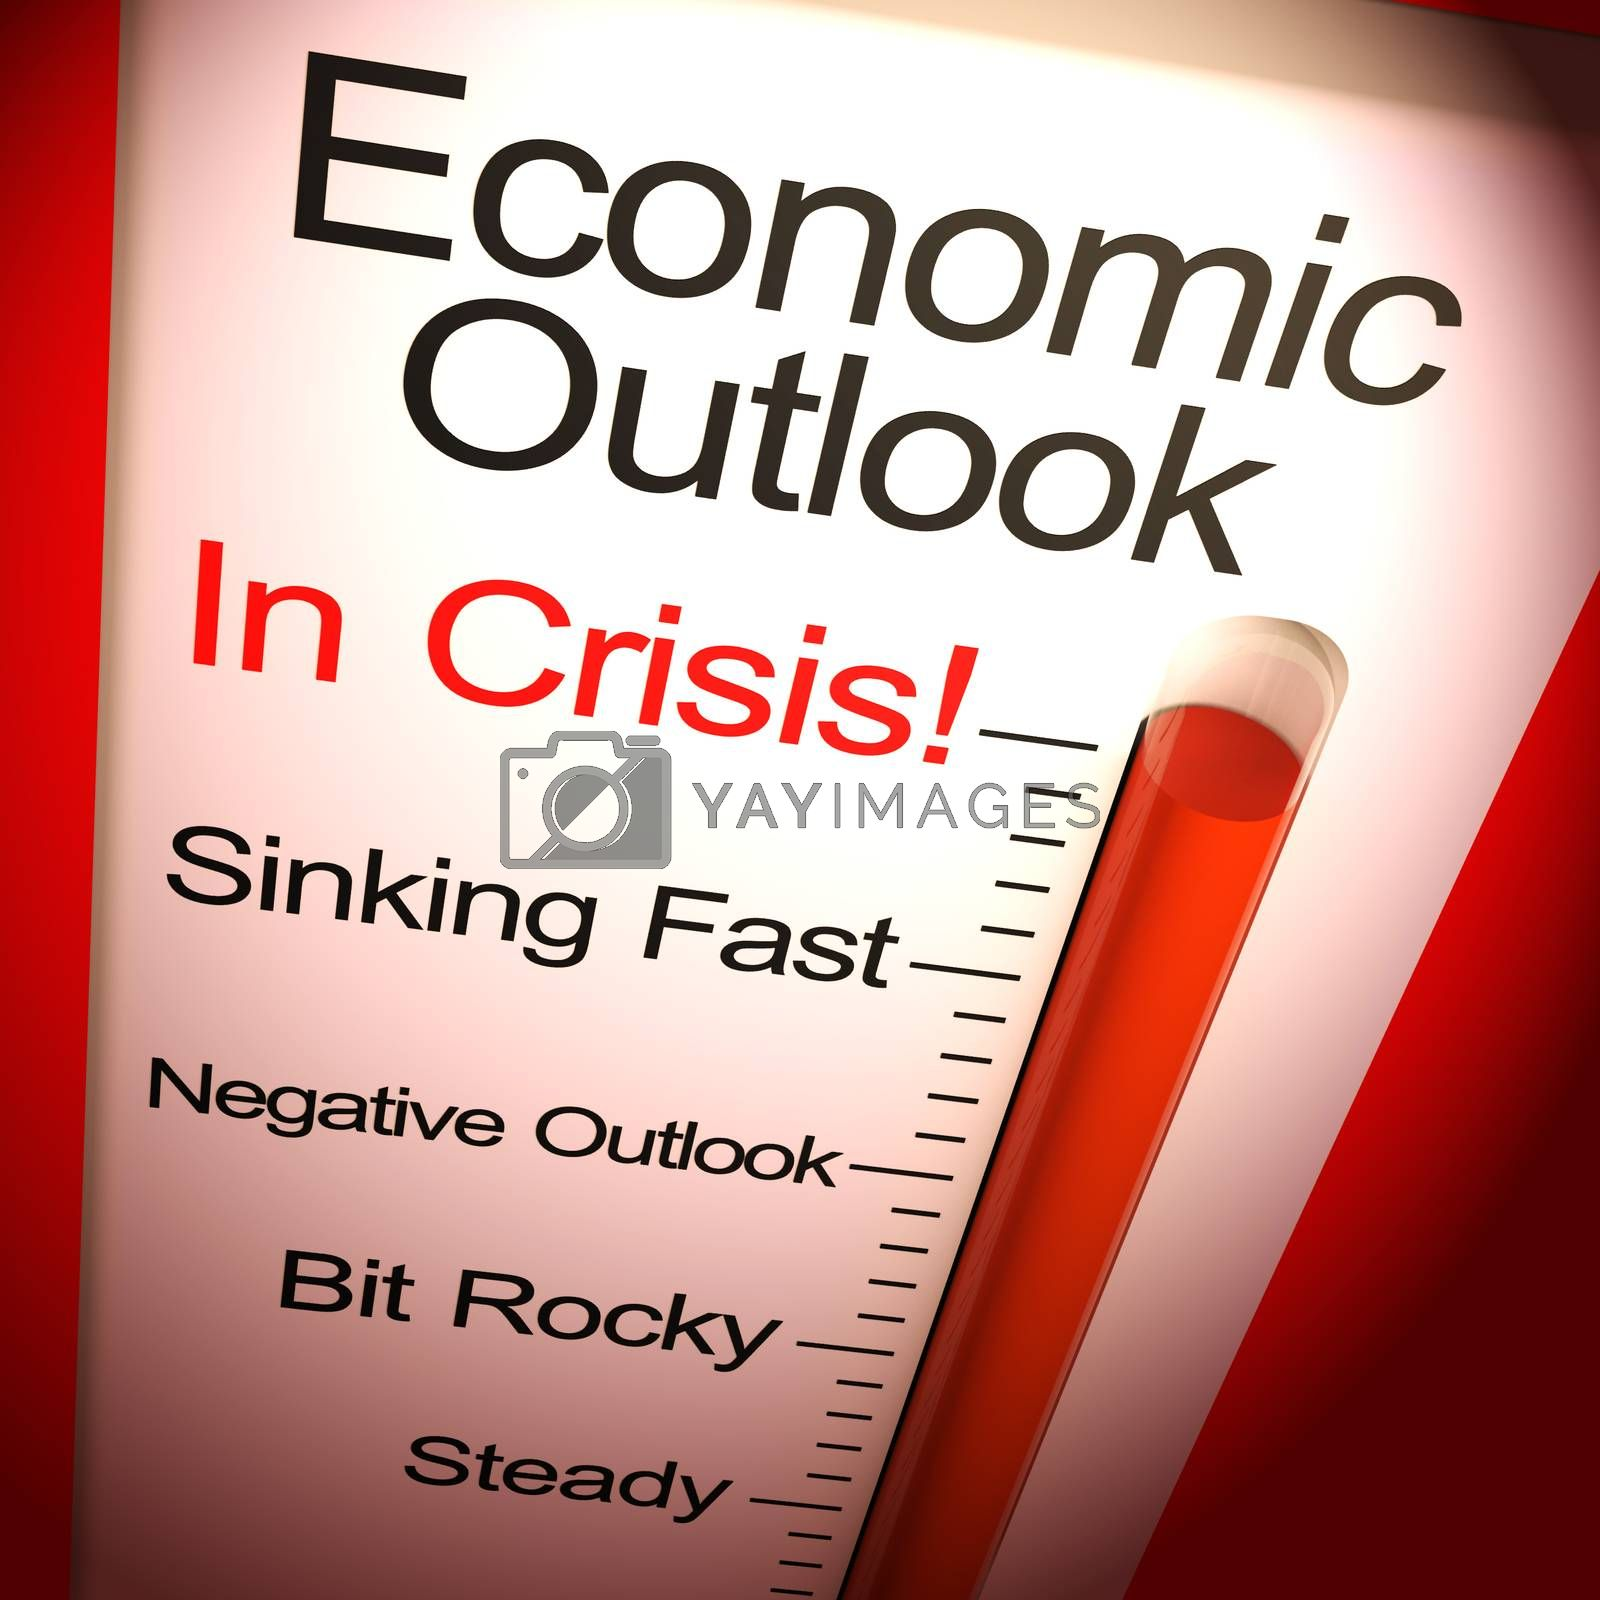 Economic outlook in crisis due to depression or financial turmoil. Deflation or business depression forcing credit crunch - 3d illustration